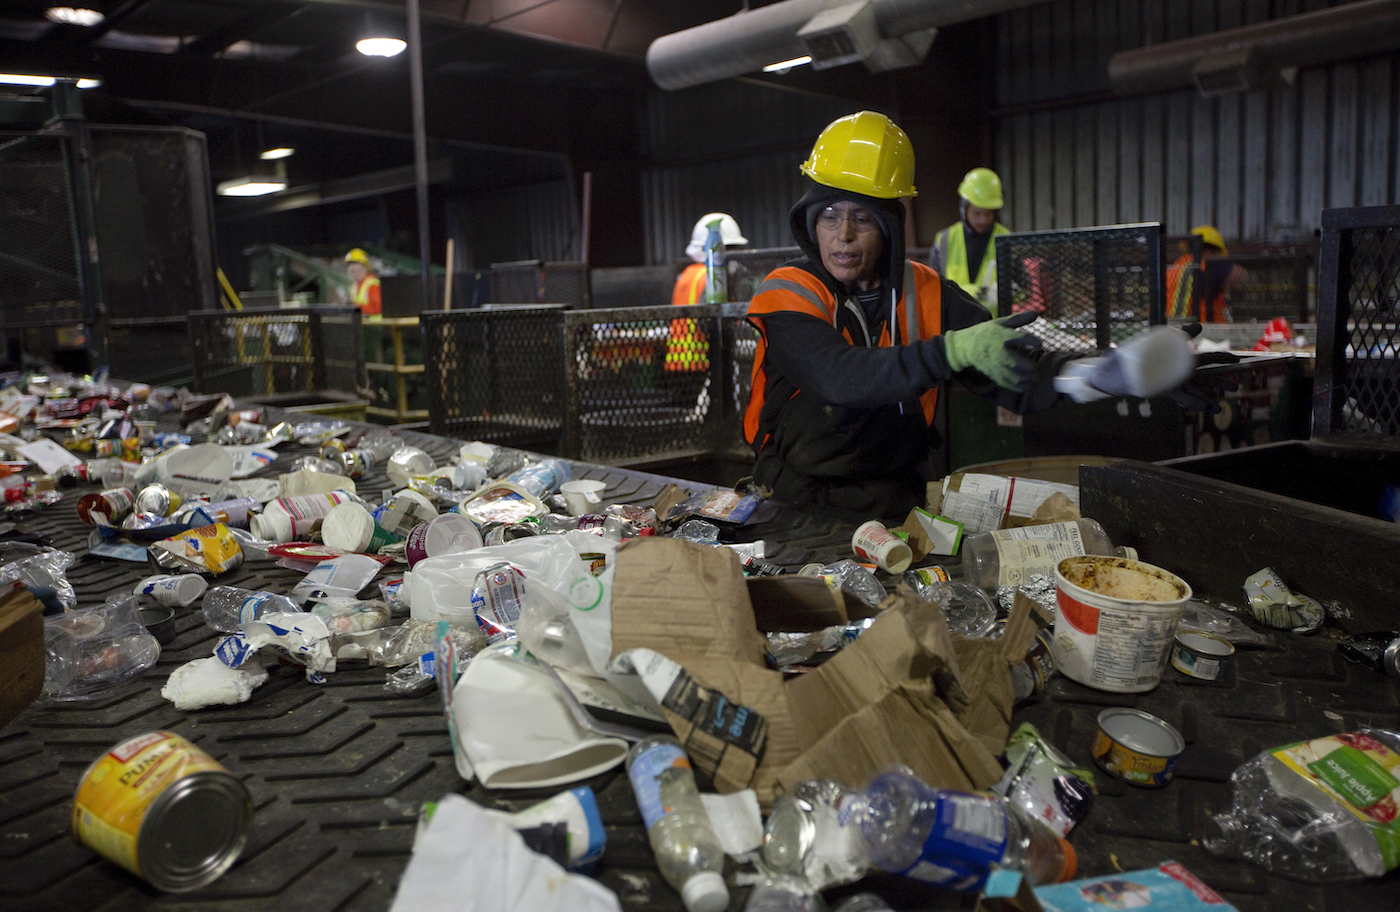 Recycling plant workers sort a stream of bottles, cardboard, and other waste.